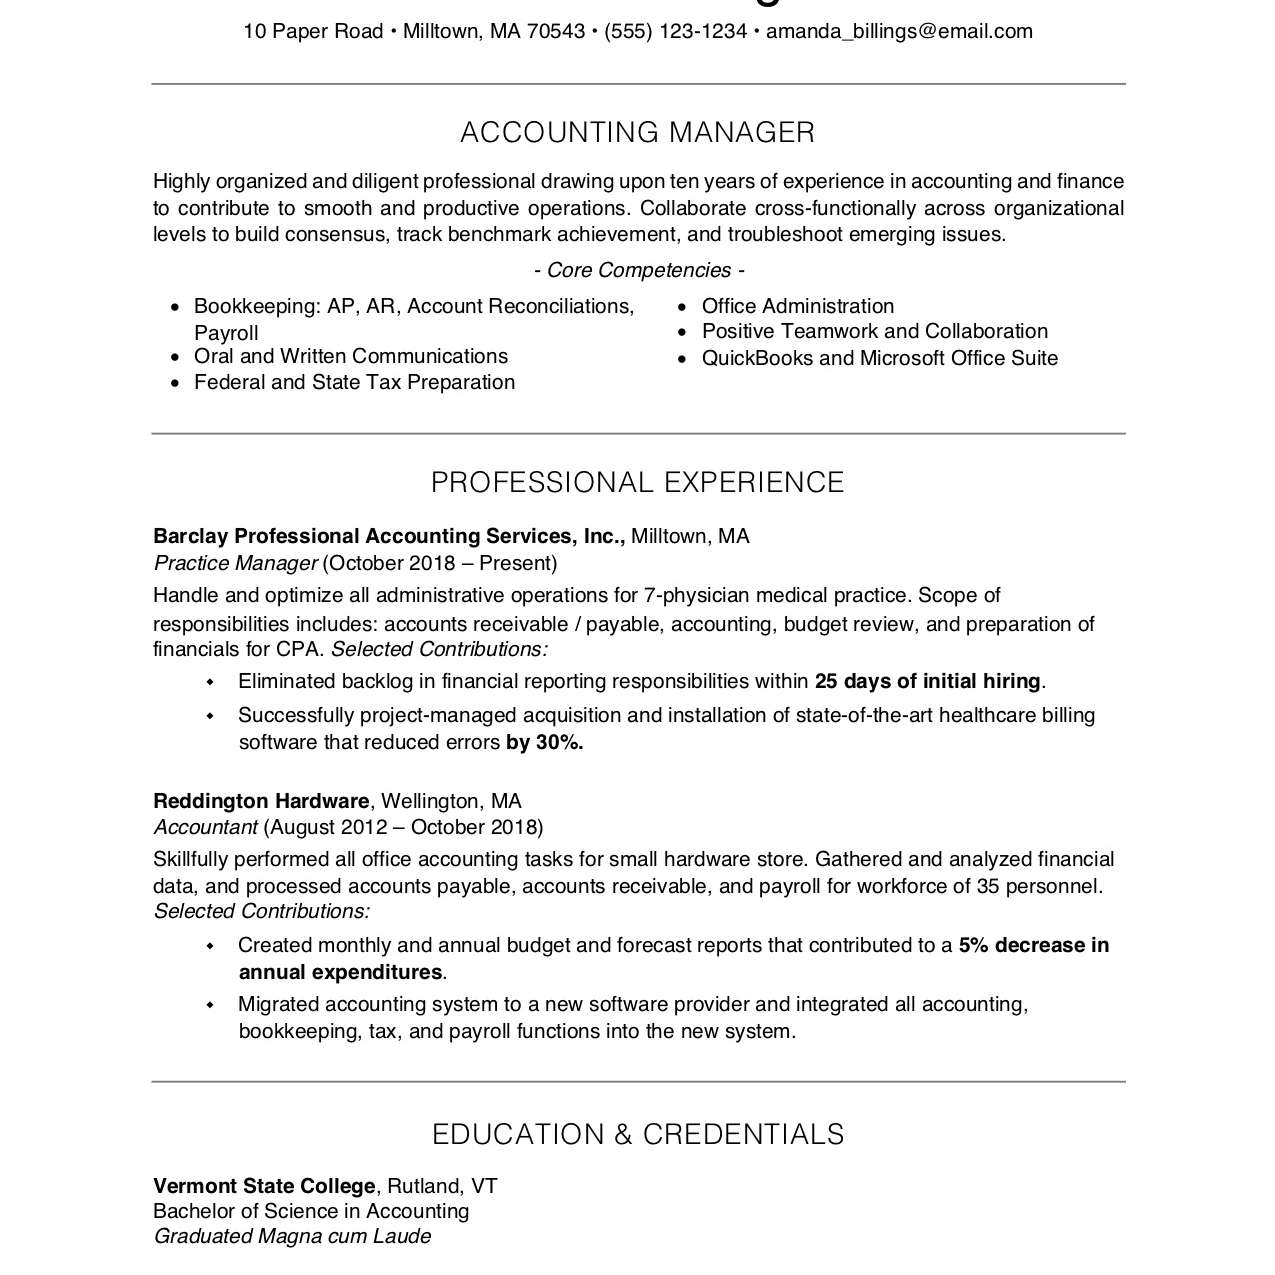 free professional resume examples and writing tips best 2063596res1 wedding example anu Resume Best Professional Resume Examples